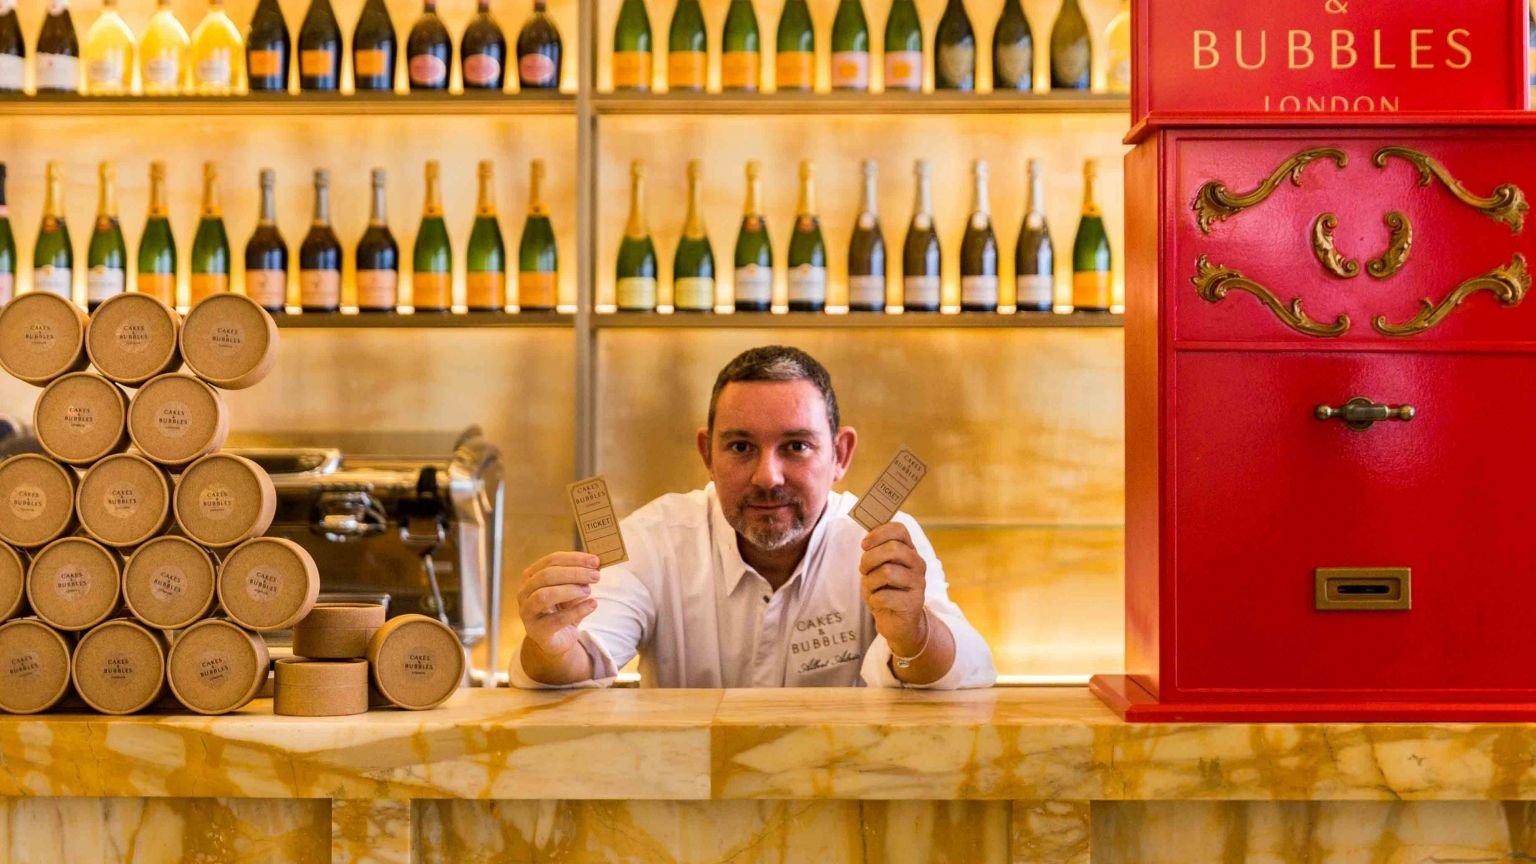 Albert Adria Cakes & Bubbles Regent Street London